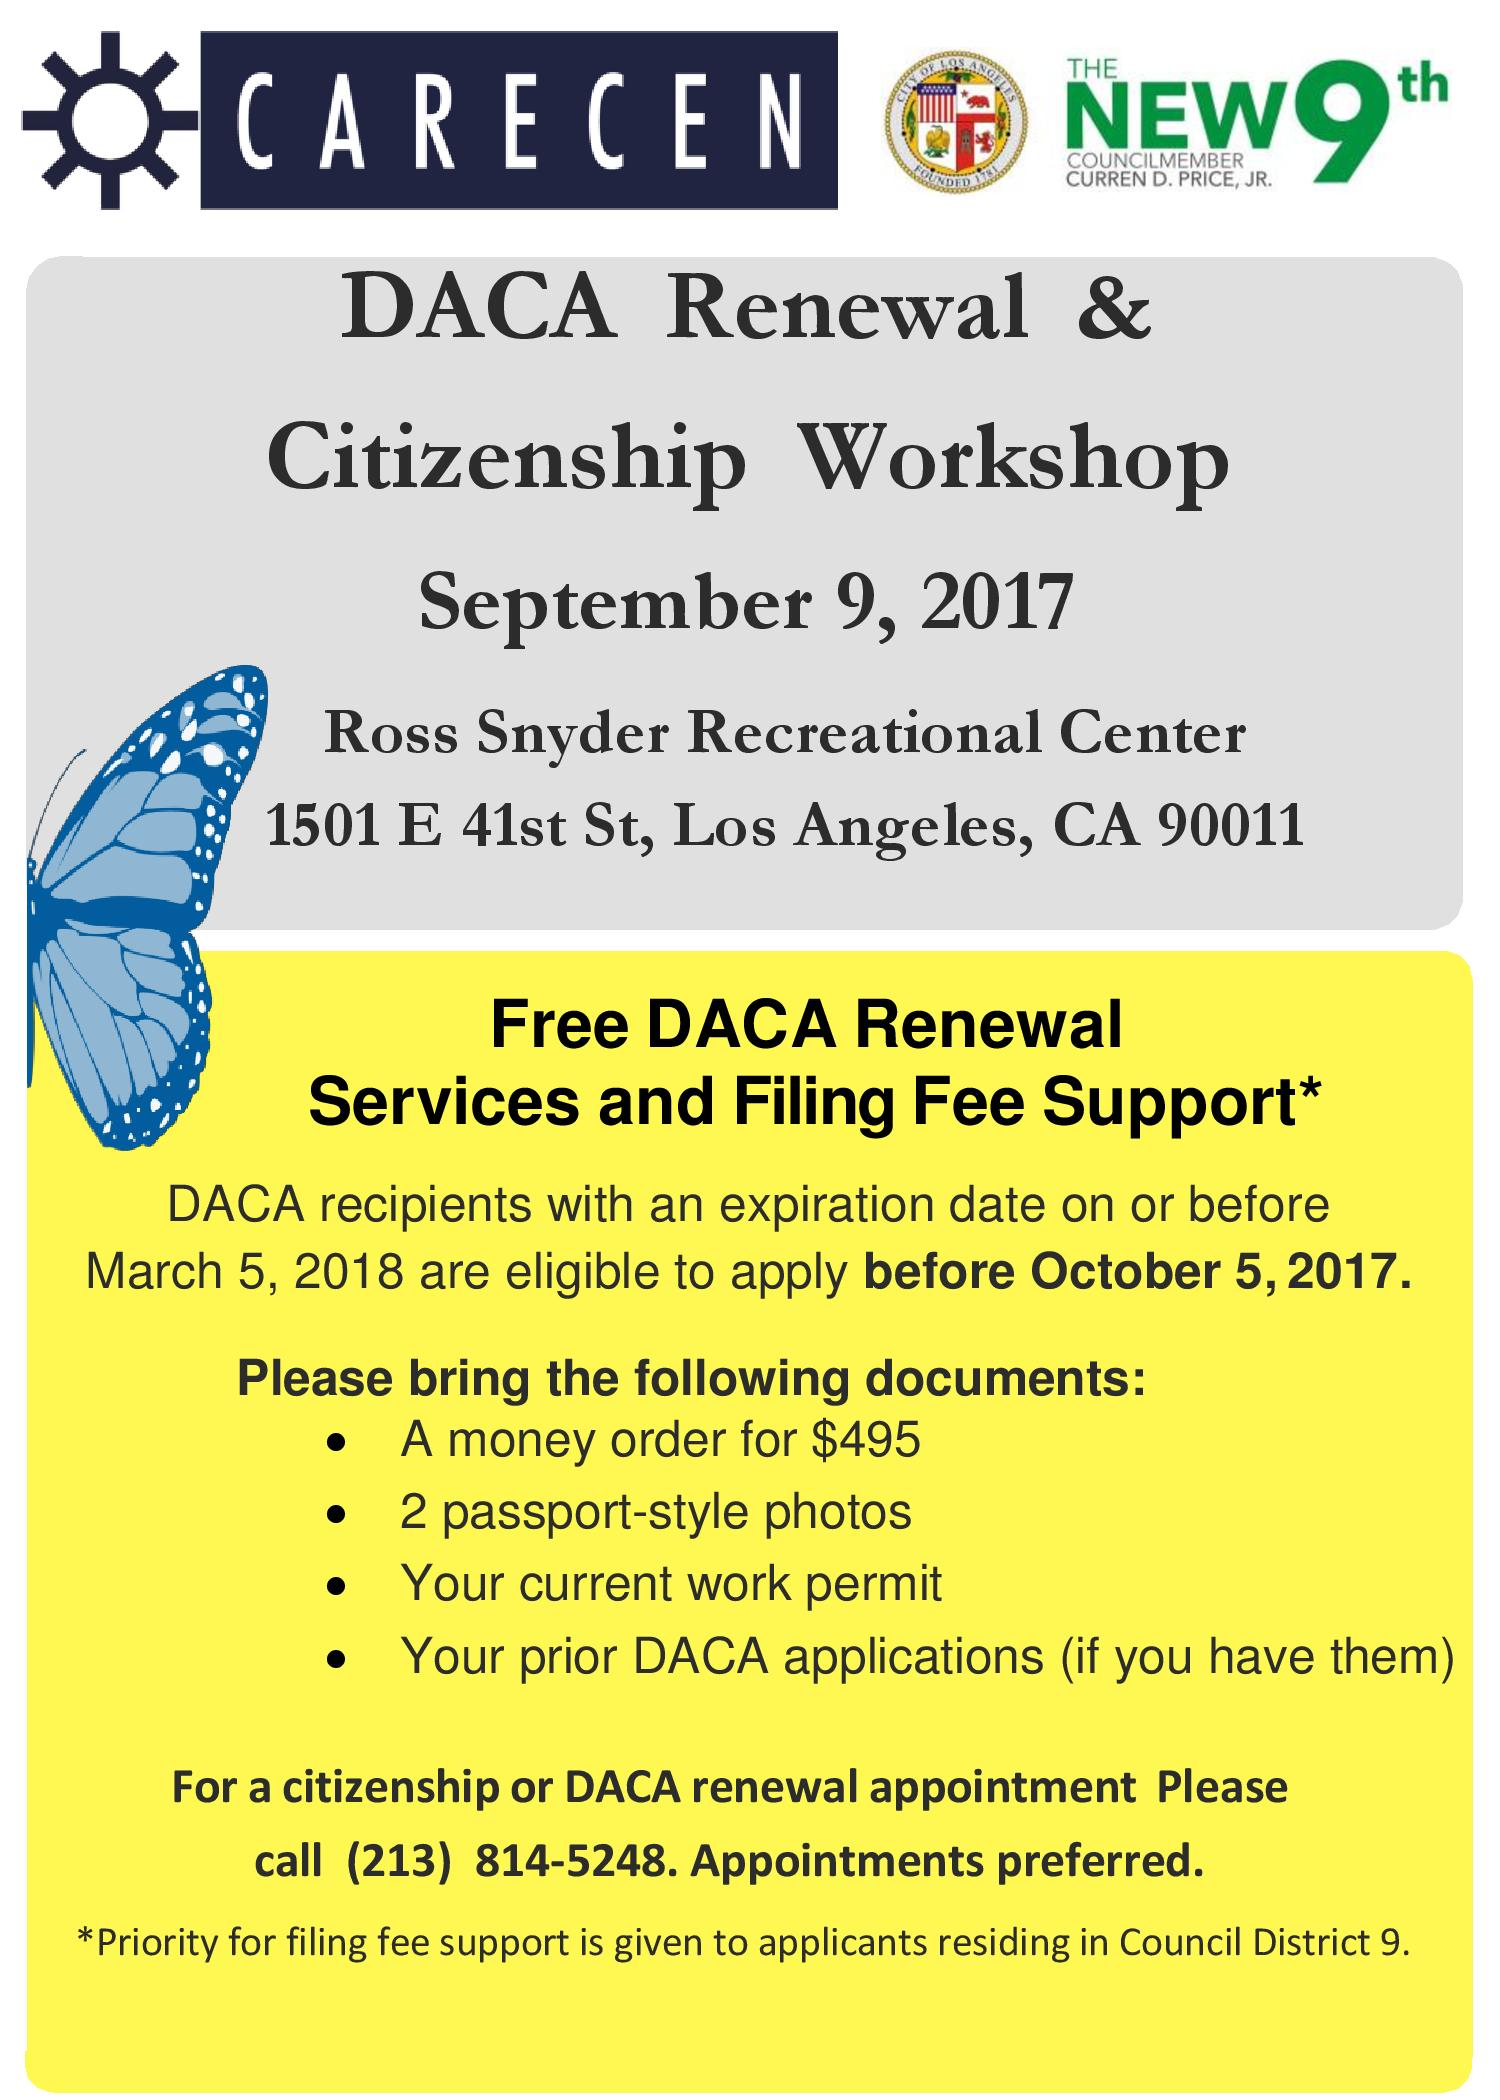 Citizenship_and_DACA_Renewal_Workshop_ENG_and_SPA-page-001.jpg